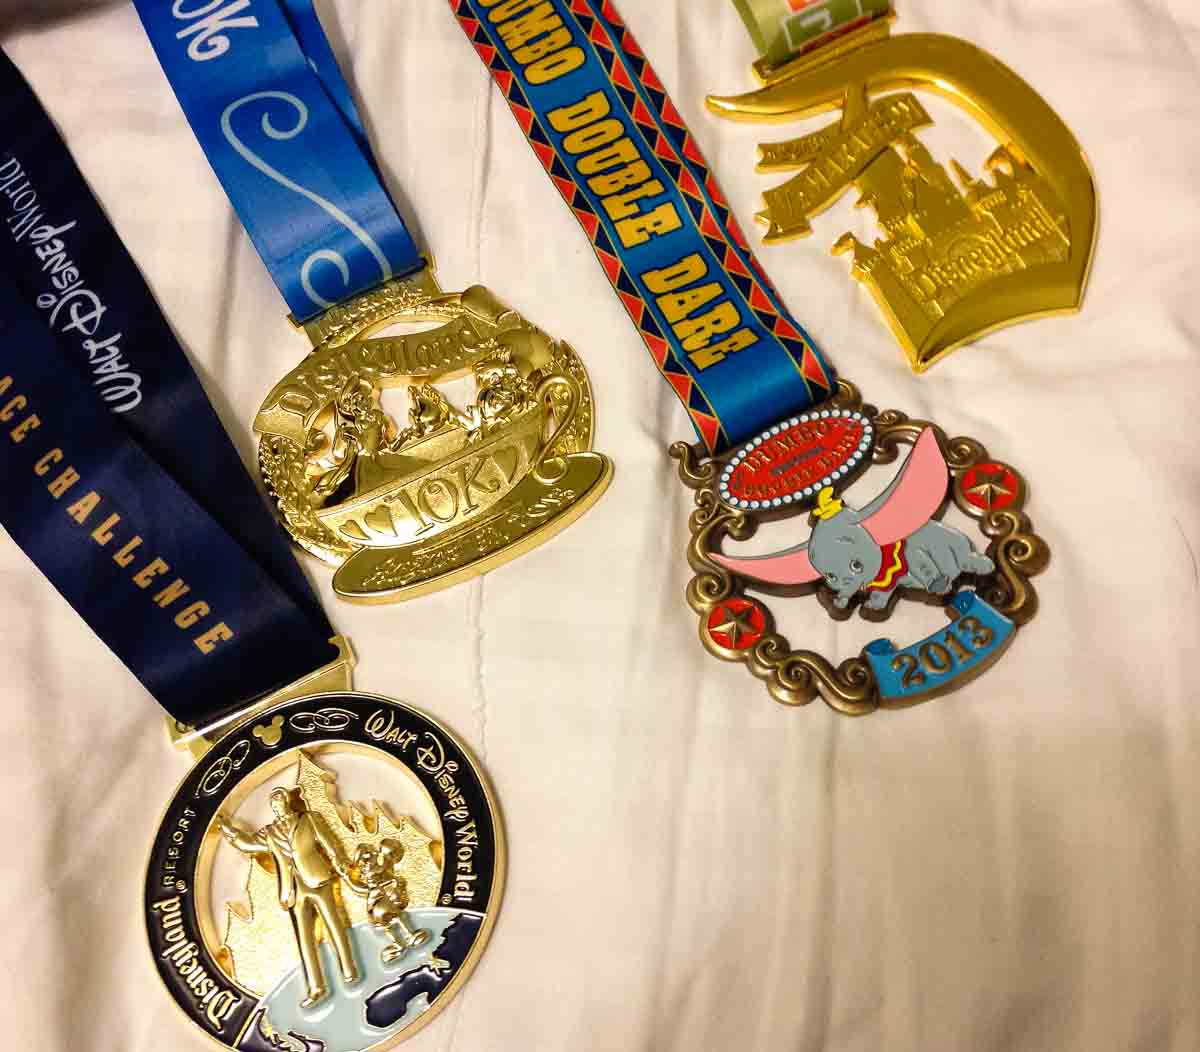 Dumbo Double Dare medal collection